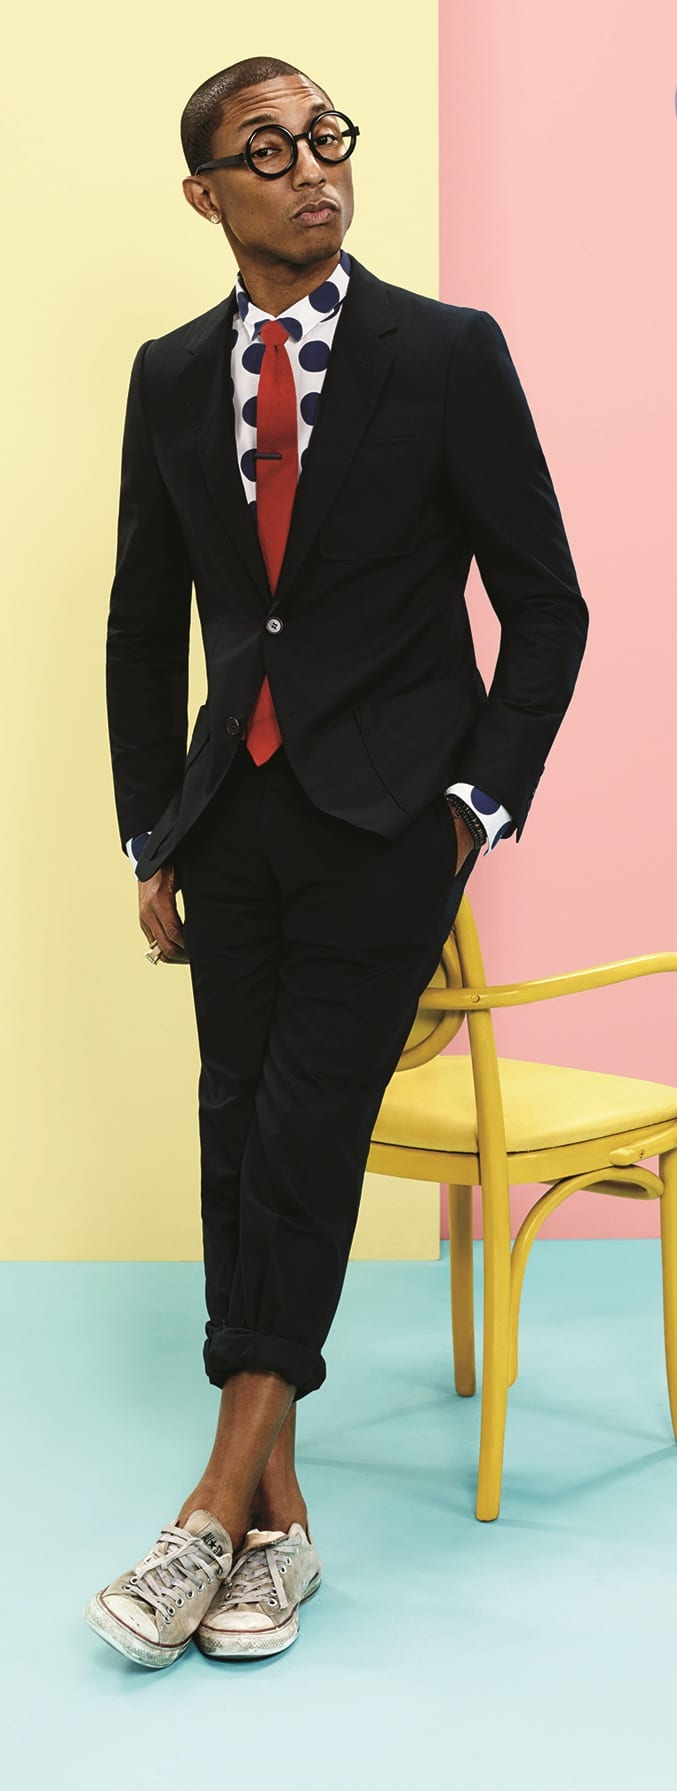 Pharrell Williams Cool Photoshoot